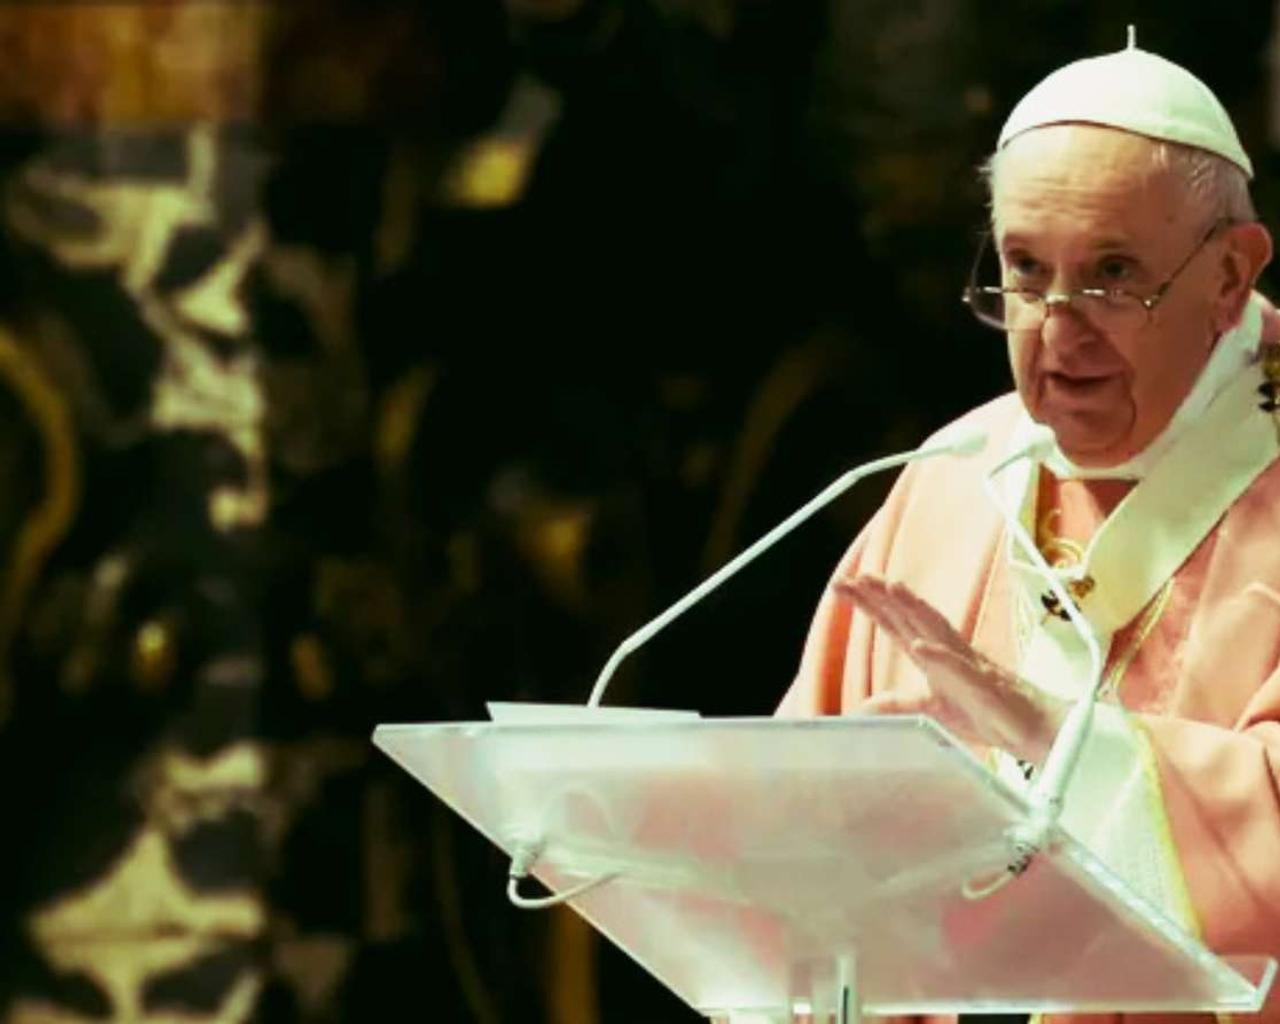 The Vatican reiterates that the Catholic Church cannot bless homosexual unions.